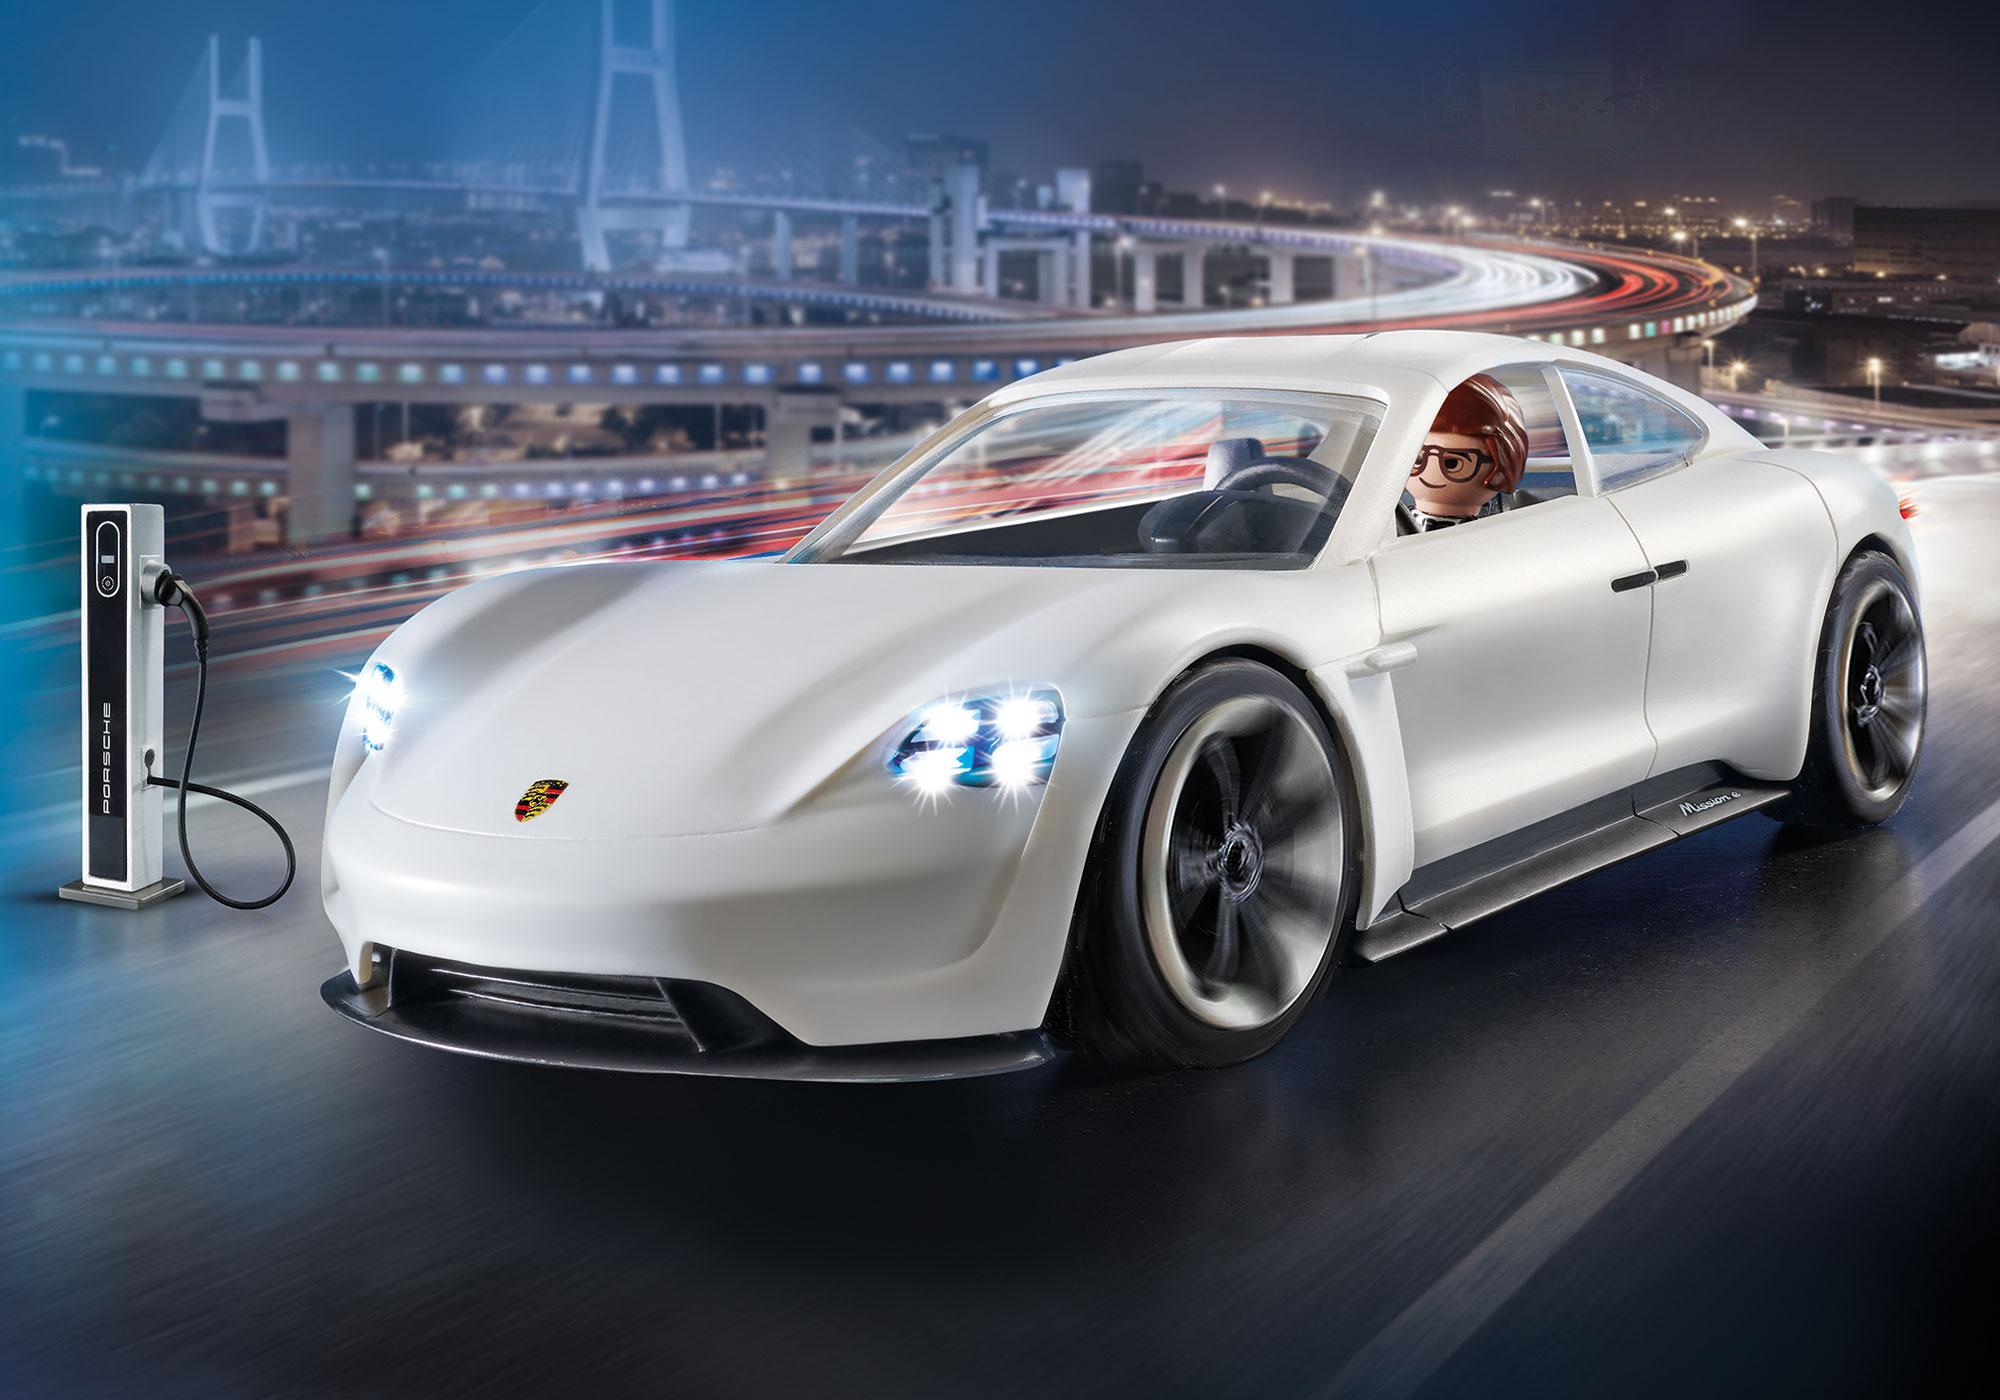 70078_product_detail/PLAYMOBIL: THE MOVIE Porsche Mission E y Rex Dasher